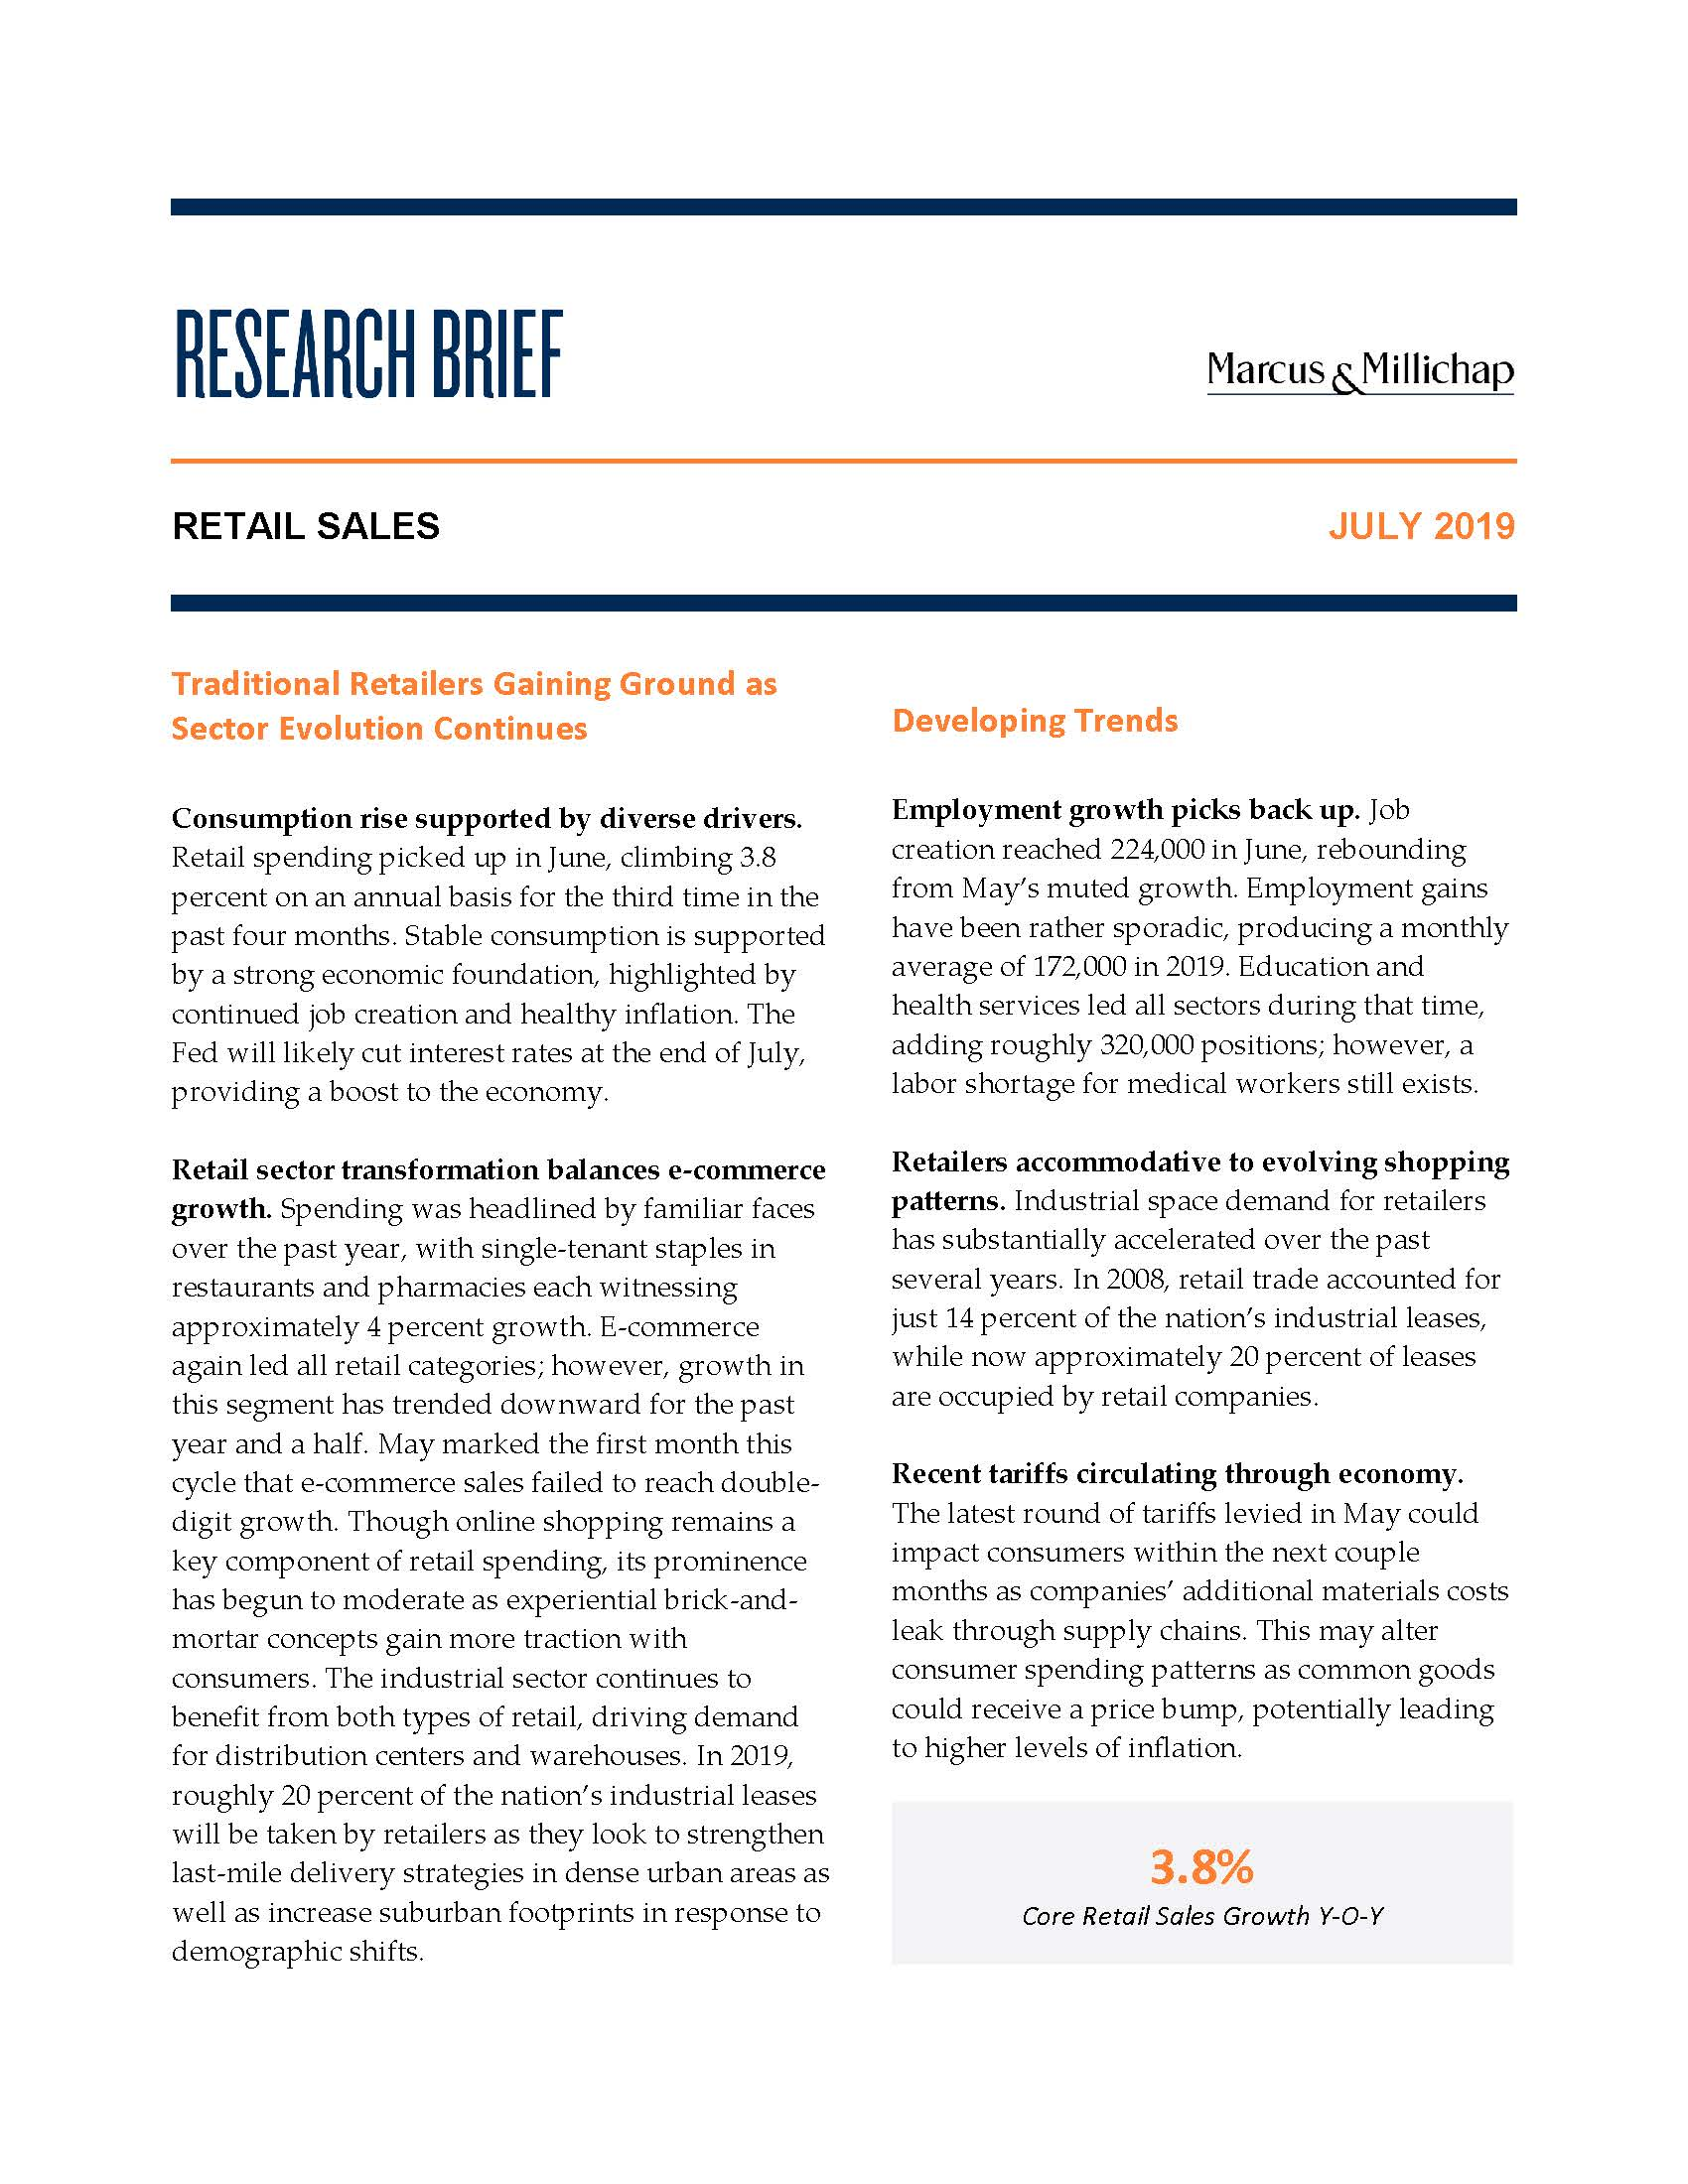 Research Brief - July 2019Retail Sales - Consumption rise supported by diverse drivers. Retail spending picked up in June, climbing 3.8 percent on an annual basis for the third time in the past four months. Stable consumption is supported by a strong economic foundation, highlighted by continued job creation and healthy inflation. The Fed will likely cut interest rates at the end of July, providing a boost to the economy.